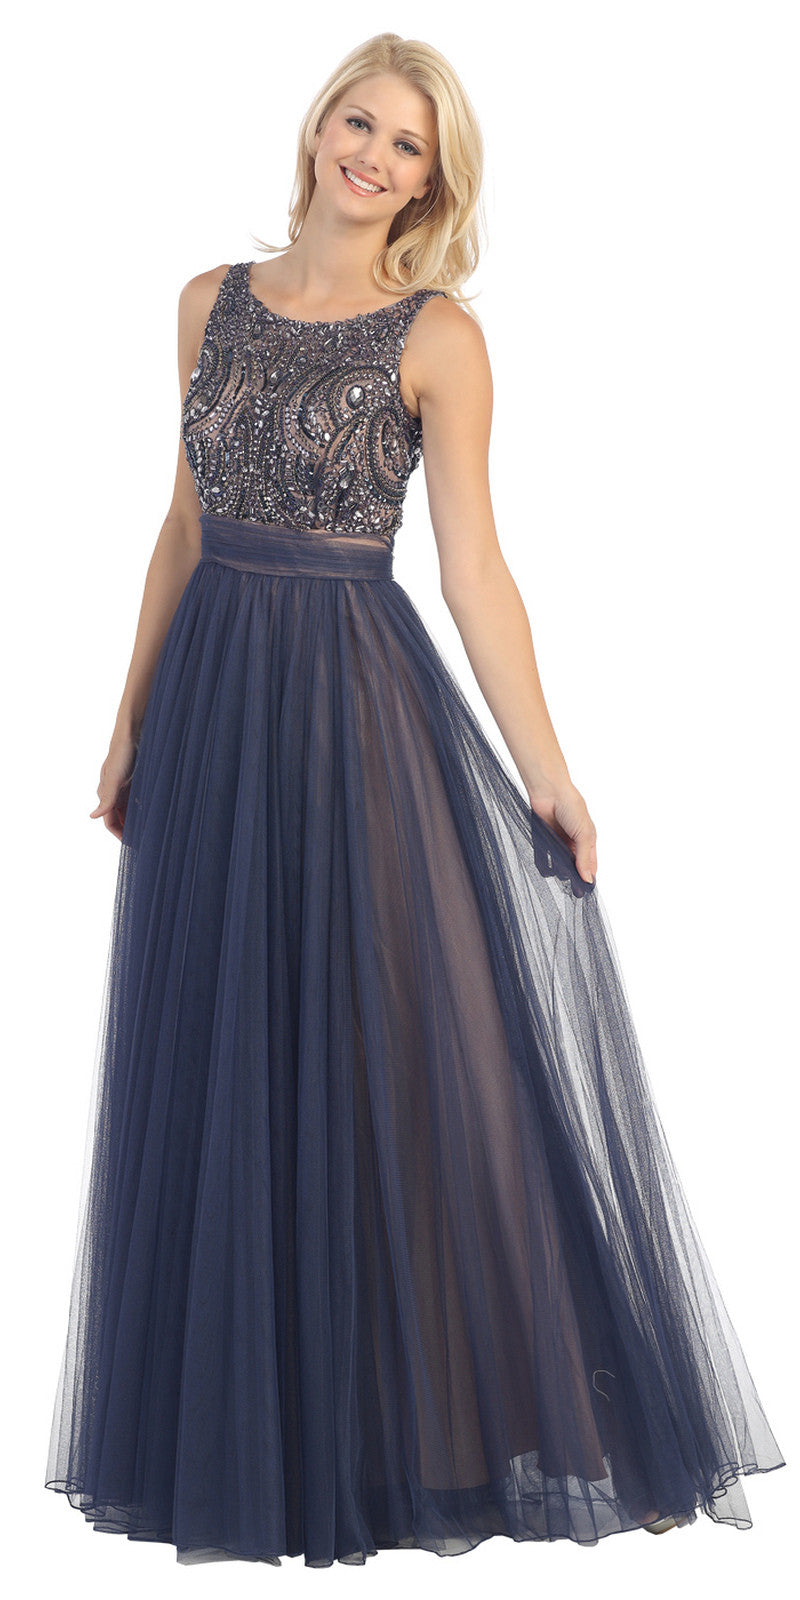 Bateau Neckline Embroidered Pleated A Line Navy Blue Nude Dress